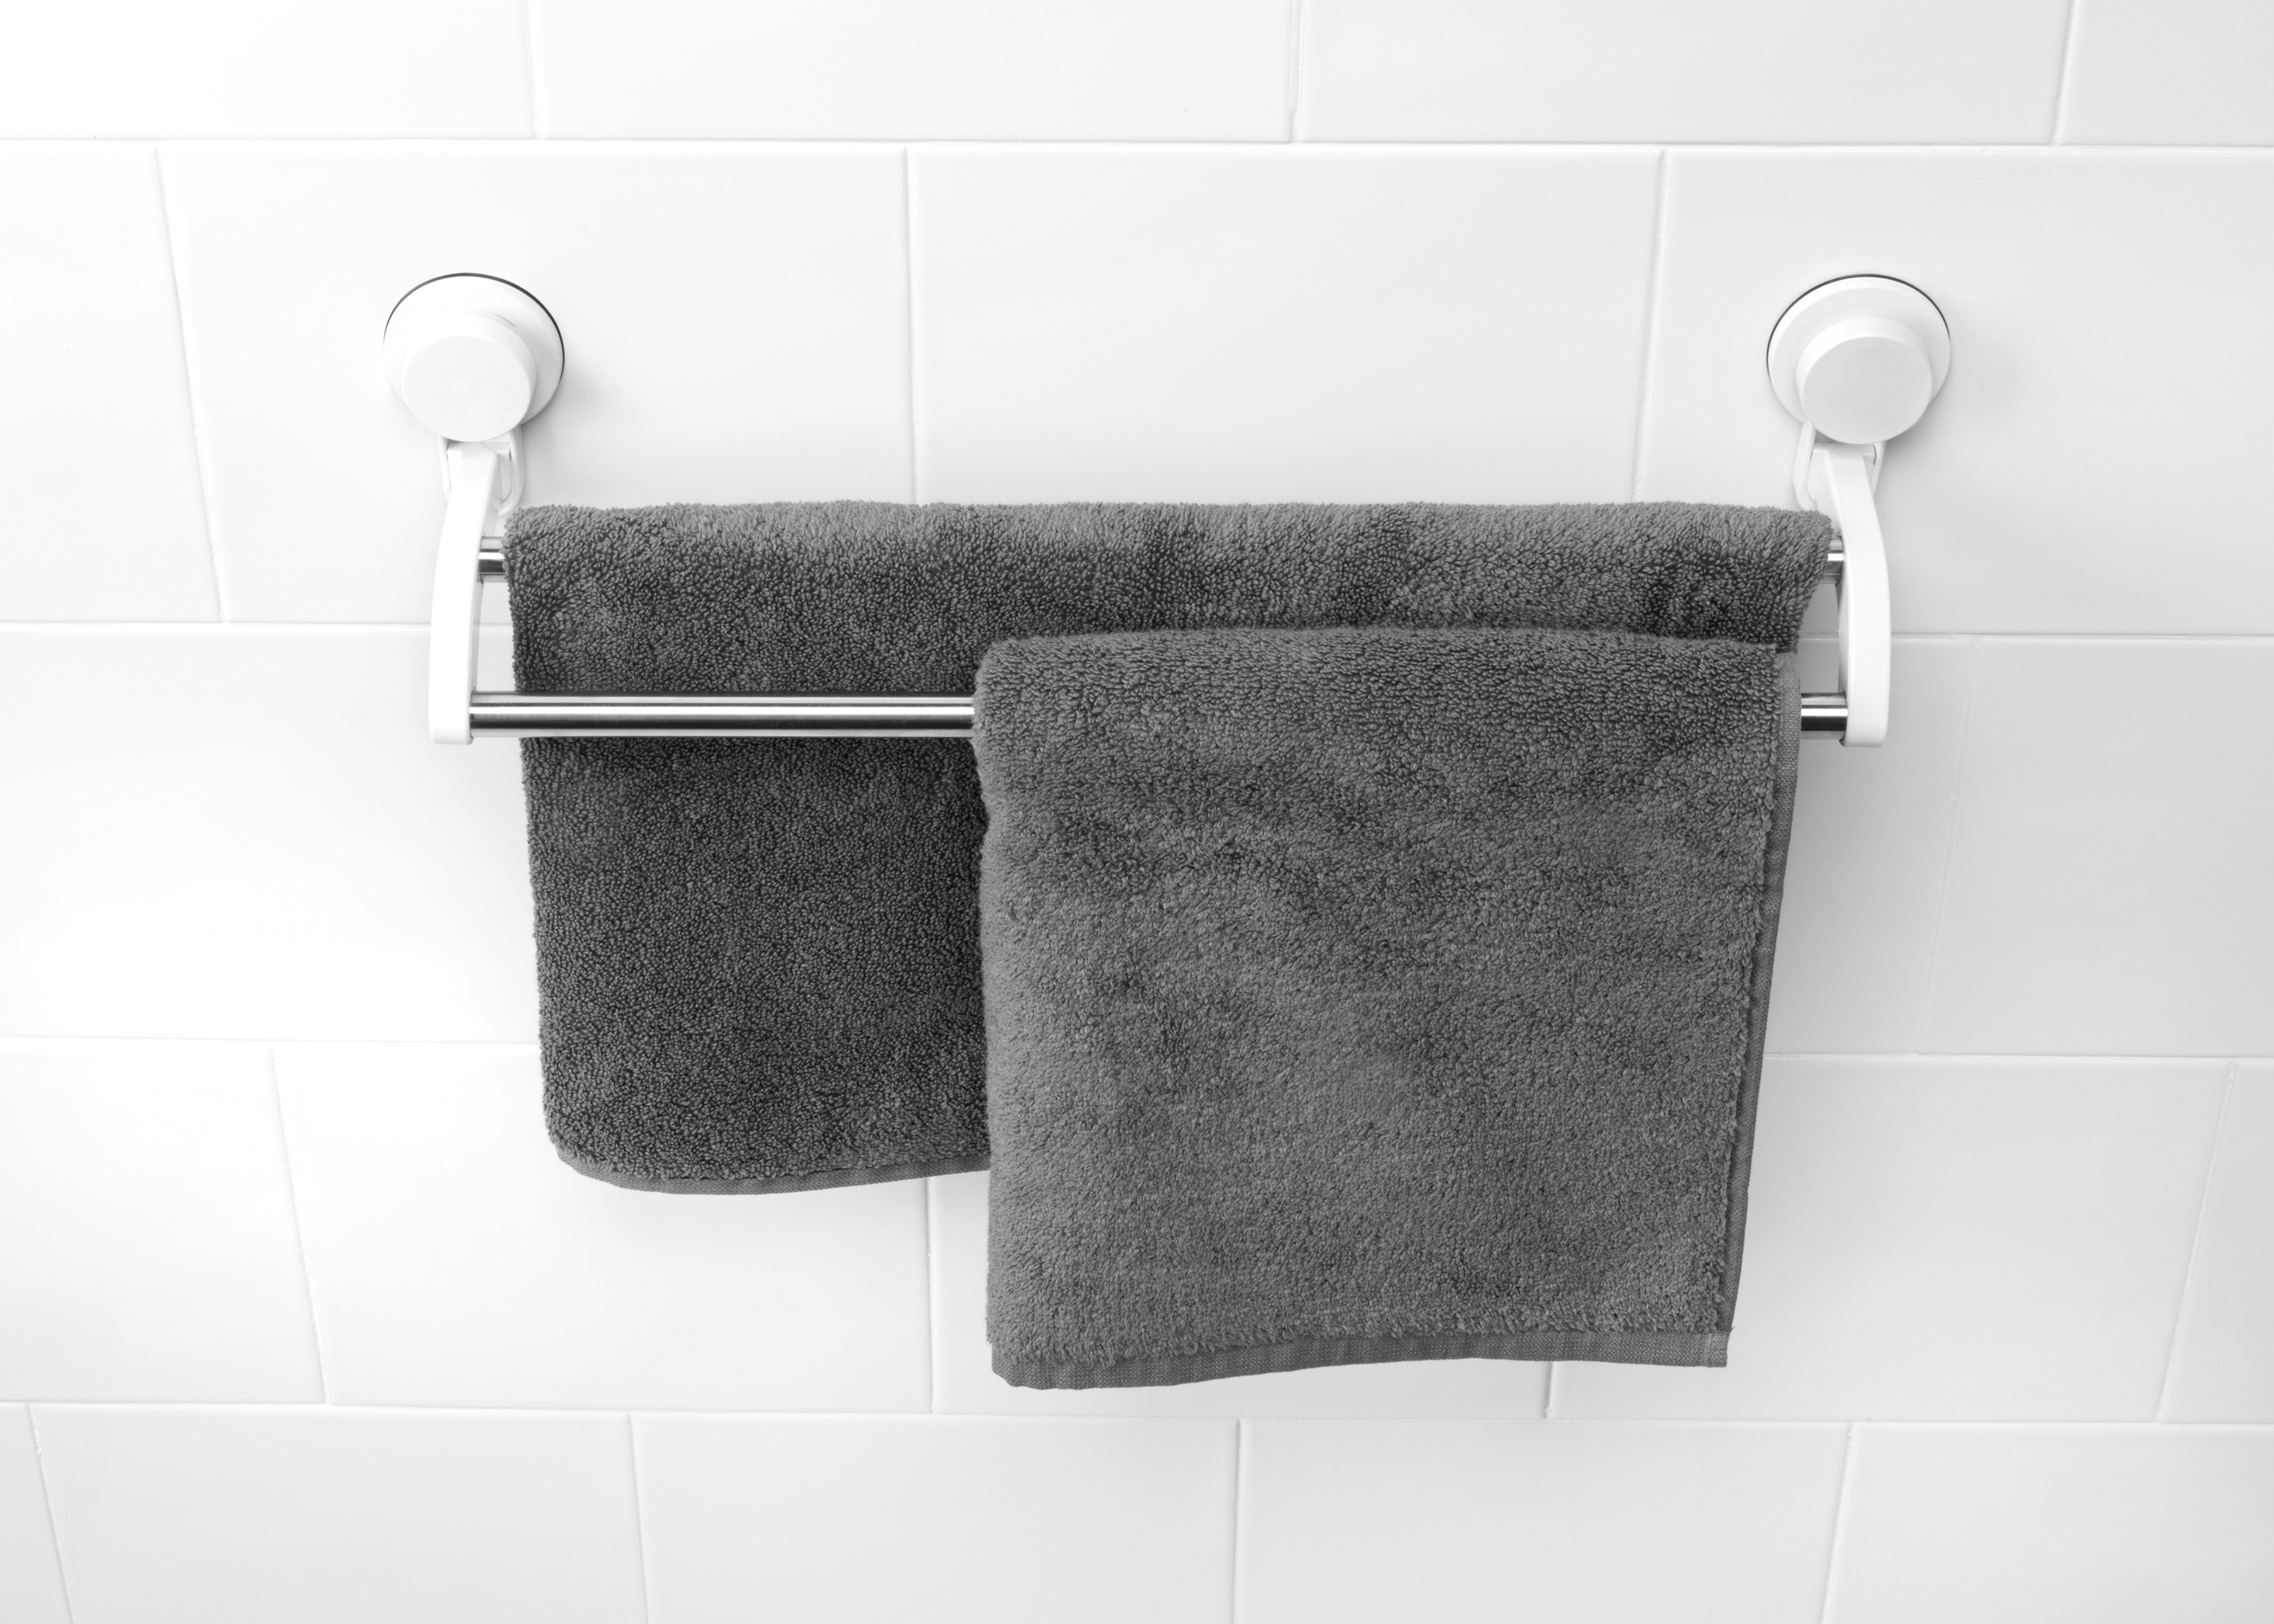 beldray bathroom plastic suction towel ring and double. Black Bedroom Furniture Sets. Home Design Ideas